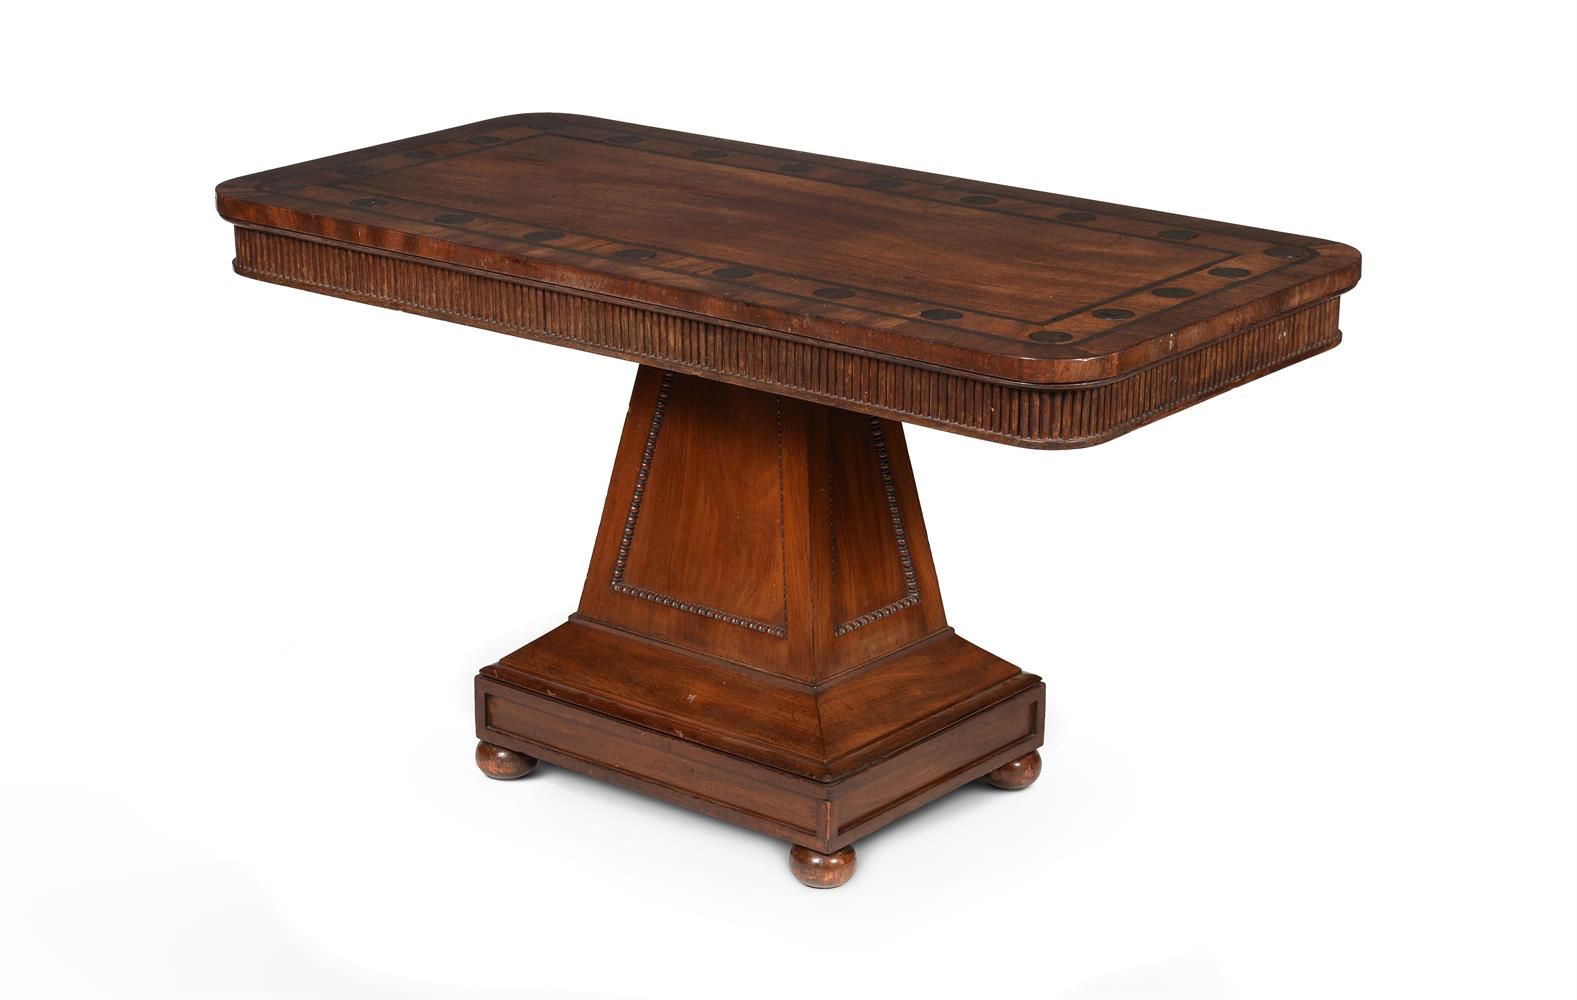 Y A PAIR OF REGENCY MAHOGANY AND MACASSAR EBONY INLAID LIBRARY OR SIDE TABLES, CIRCA 1820 - Image 3 of 5